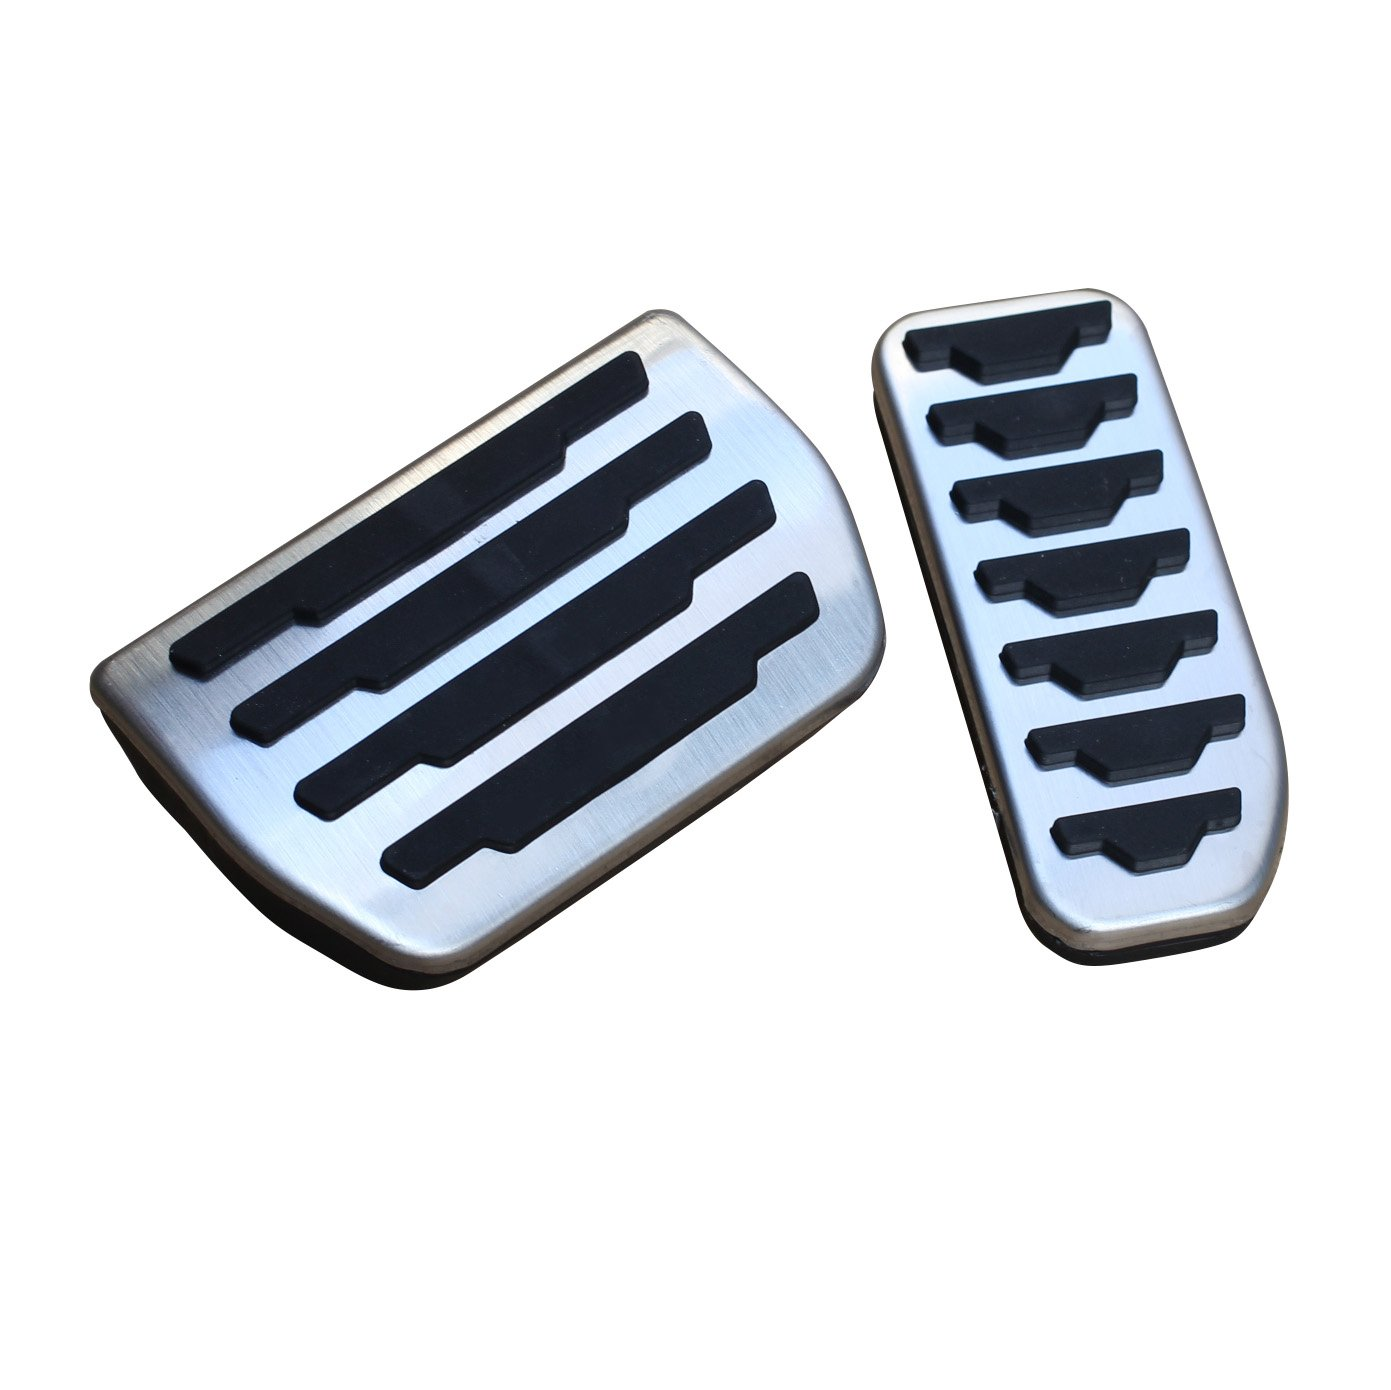 AutoBig No Drill Gas Brake Pedals for Discovery Sport Evoque Jaguar XE XF F-Pace Land Rover